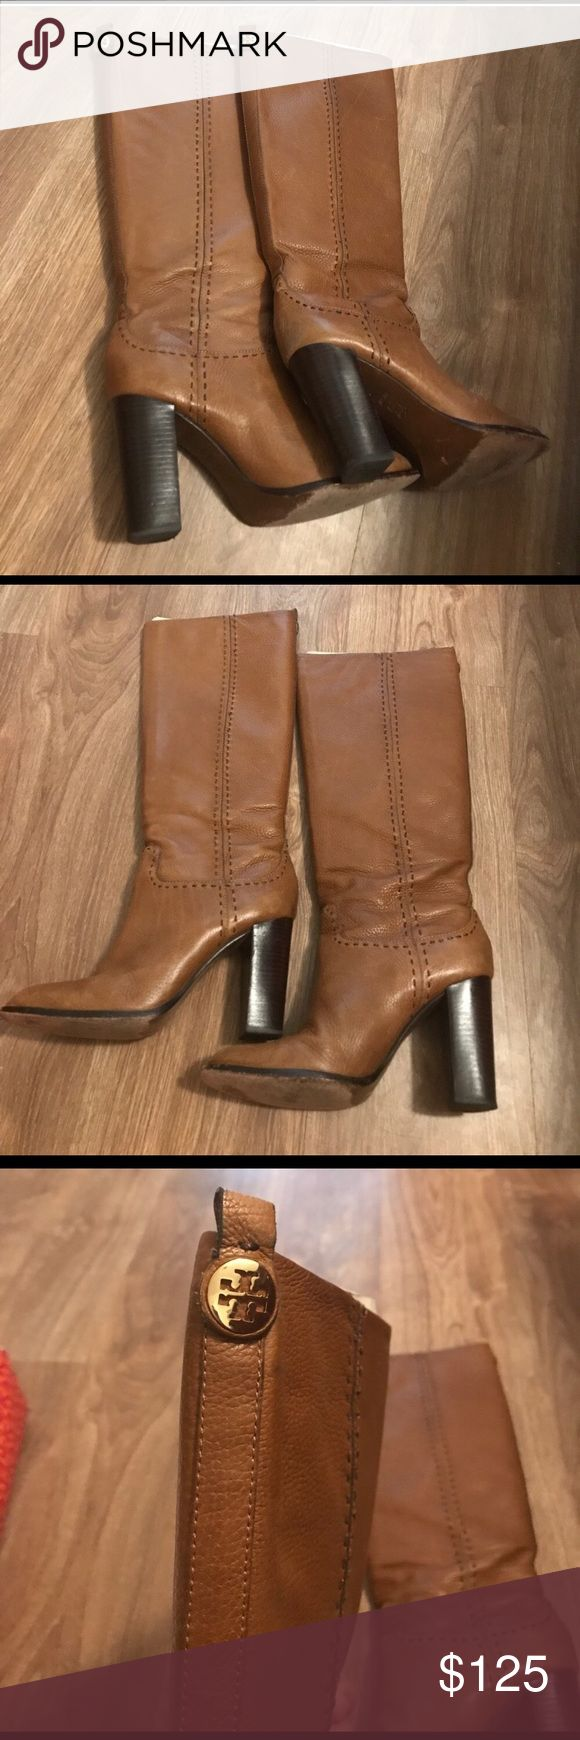 Tory Burch Brown Leather Nadine Riding Boots 9 EUC are these 100% Authentic Tory Burch Brown (Color is Sienna) Leather Nadine Riding Boots in Ladies Size 9. Unboxed. Retail $400.00 Tory Burch Shoes Heeled Boots